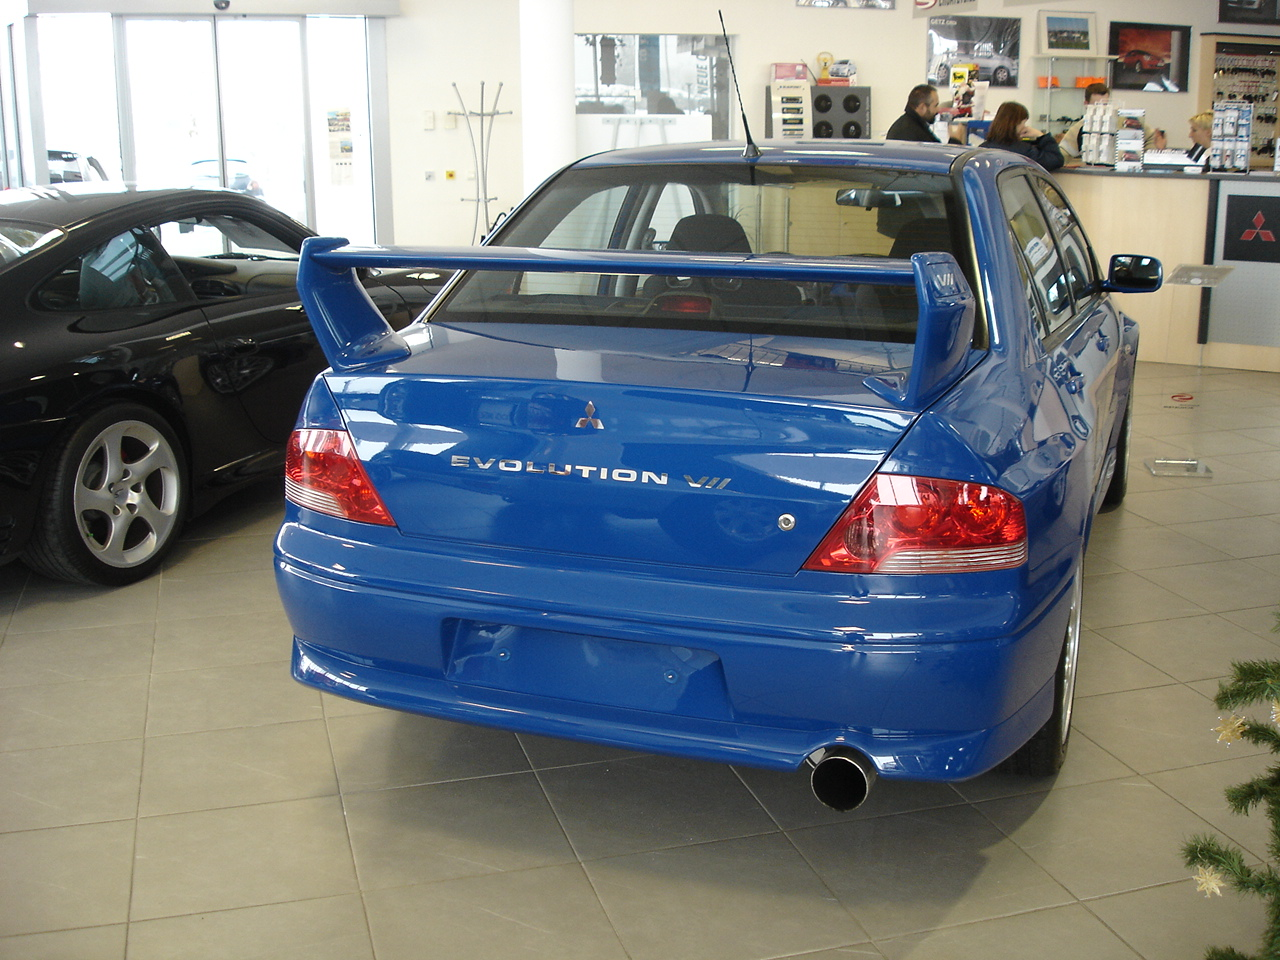 File:Lancer Evo VII Heck.jpg - Wikimedia Commons